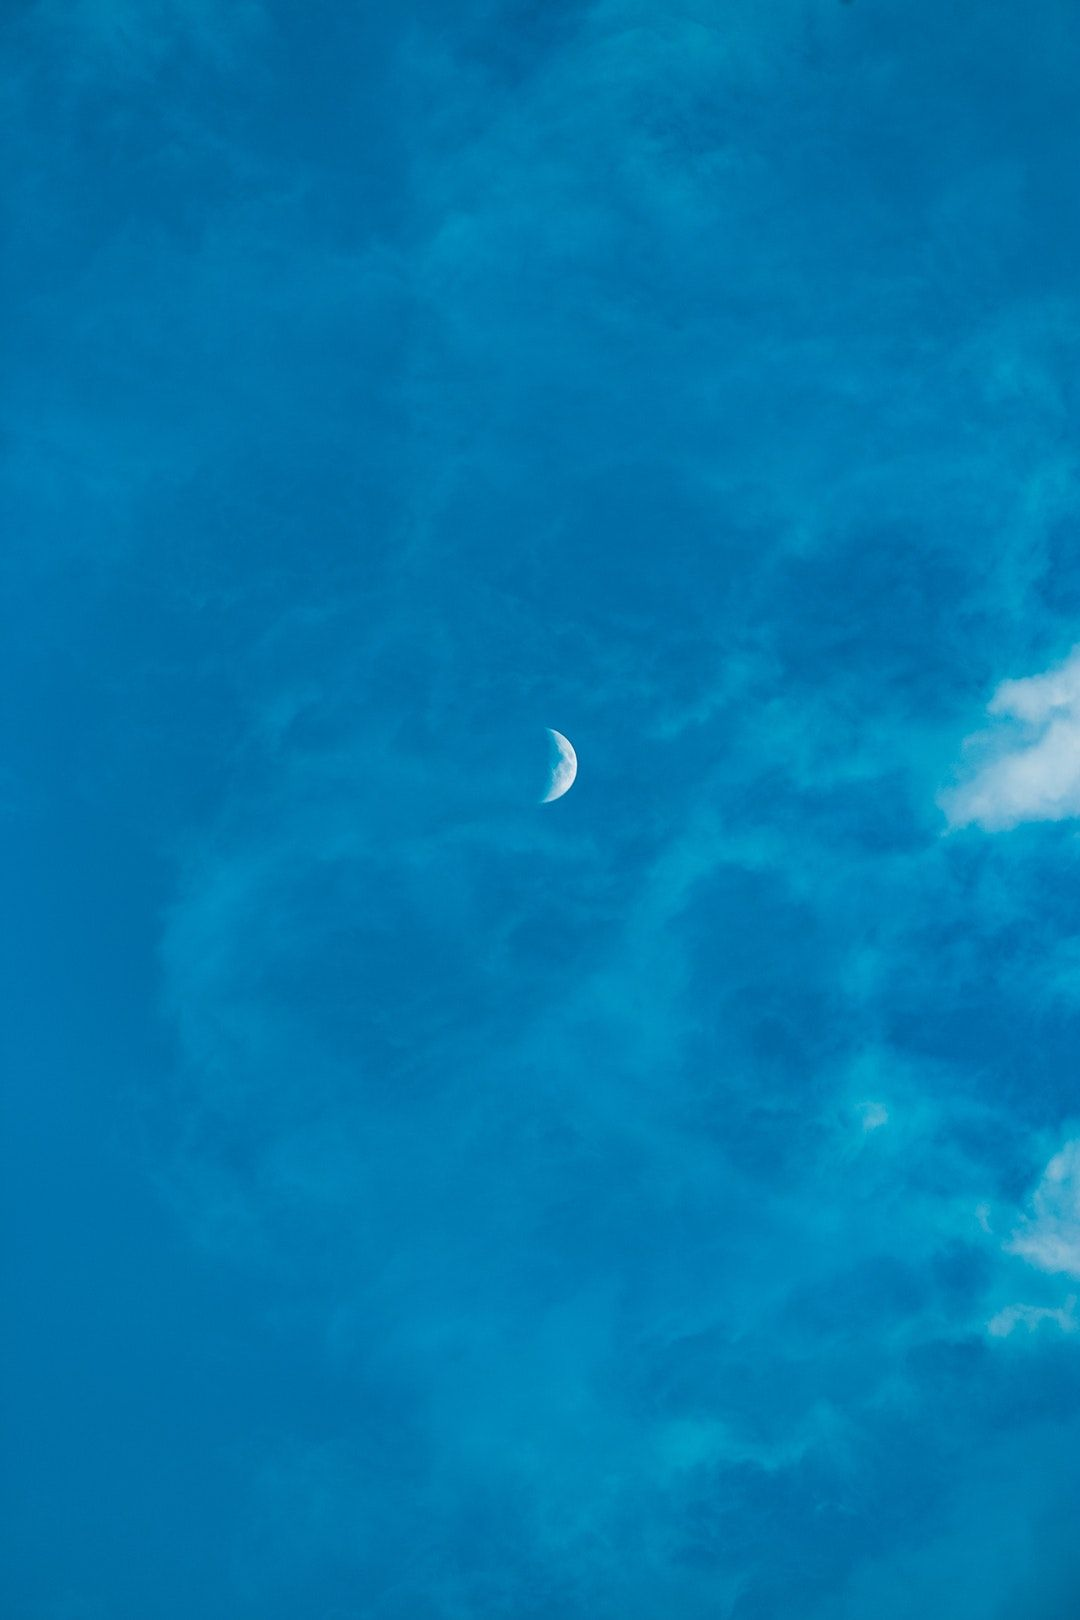 Download This Free Hd Photo Of Blue Sky Cloud And Moon By Kenrick Mills Kenrickmills Blue Sky Moon Blue Sky Clouds Aesthetic Backgrounds Blue Pictures